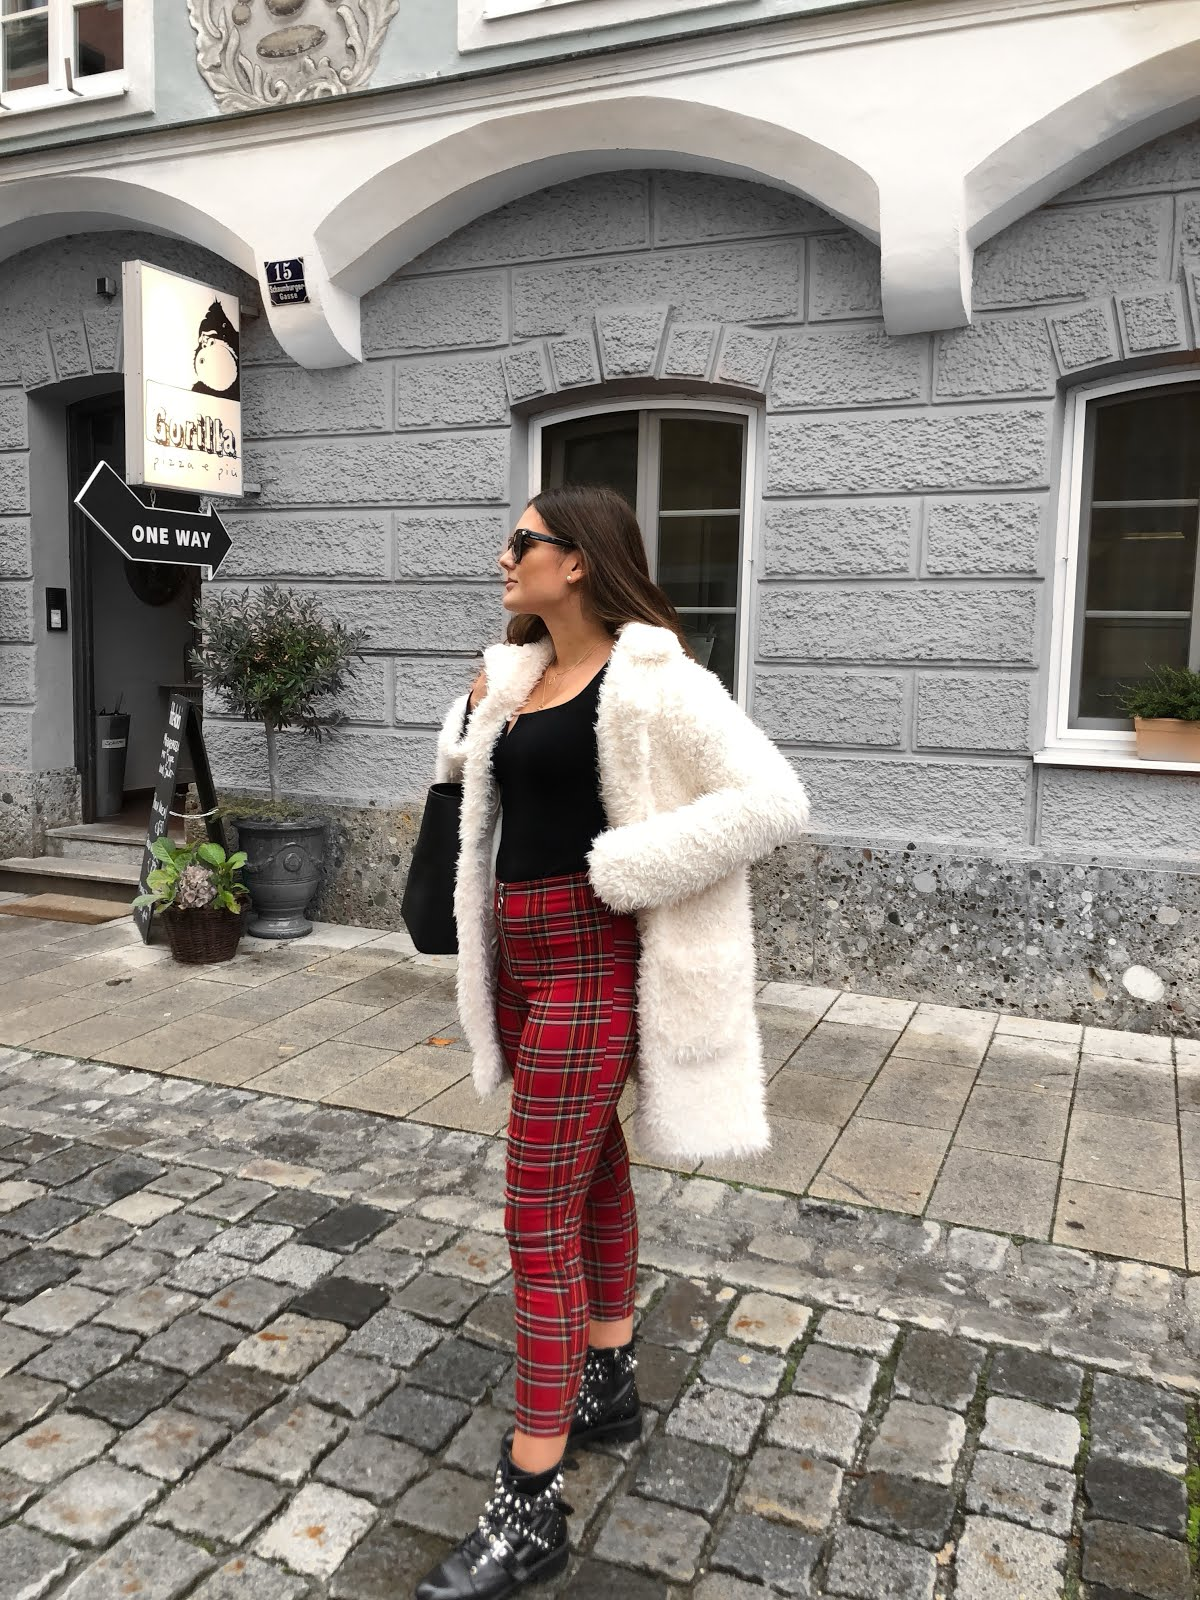 teddy coat, autumn look, autumn outfit, autumn outfit inspiration, herbst outfit inspiration, herbst outfit, winter outfit, outfit inspiration, teddy coat outfit, teddy coat outfit inspiration, fashion blog, fashion inspiration, zara, bershka, zara biker boots, fashionblogger, nelly ray, nelly ray blog